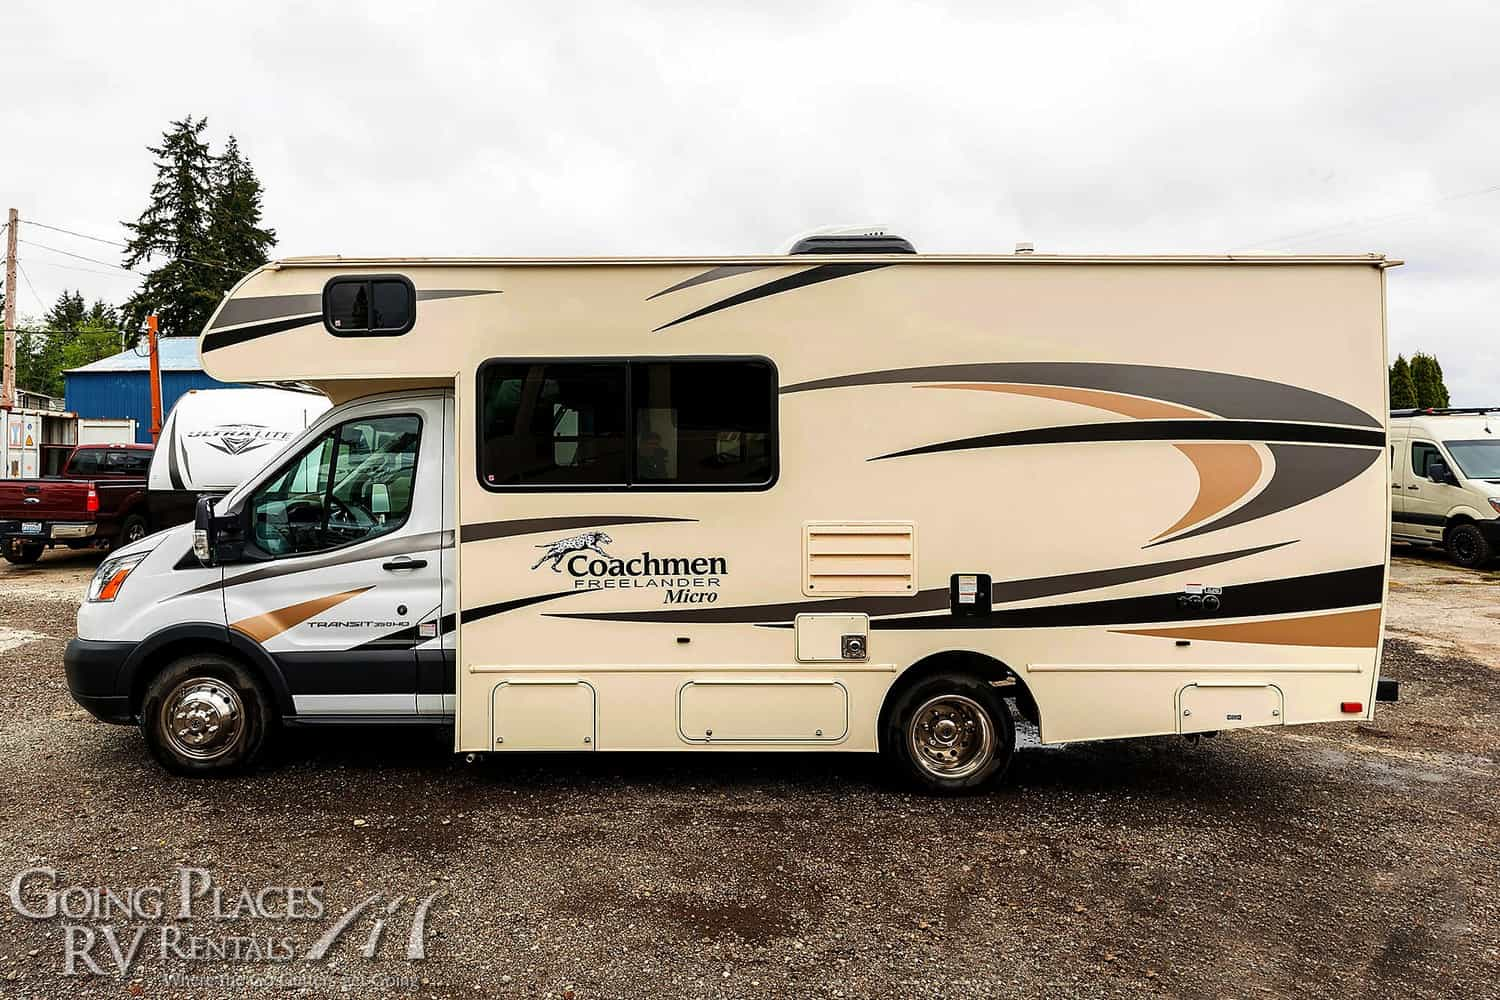 Coachmen Freelander Micro Class C RV for rent Phoenix - Going Places RV Rentals - 623-221-1161